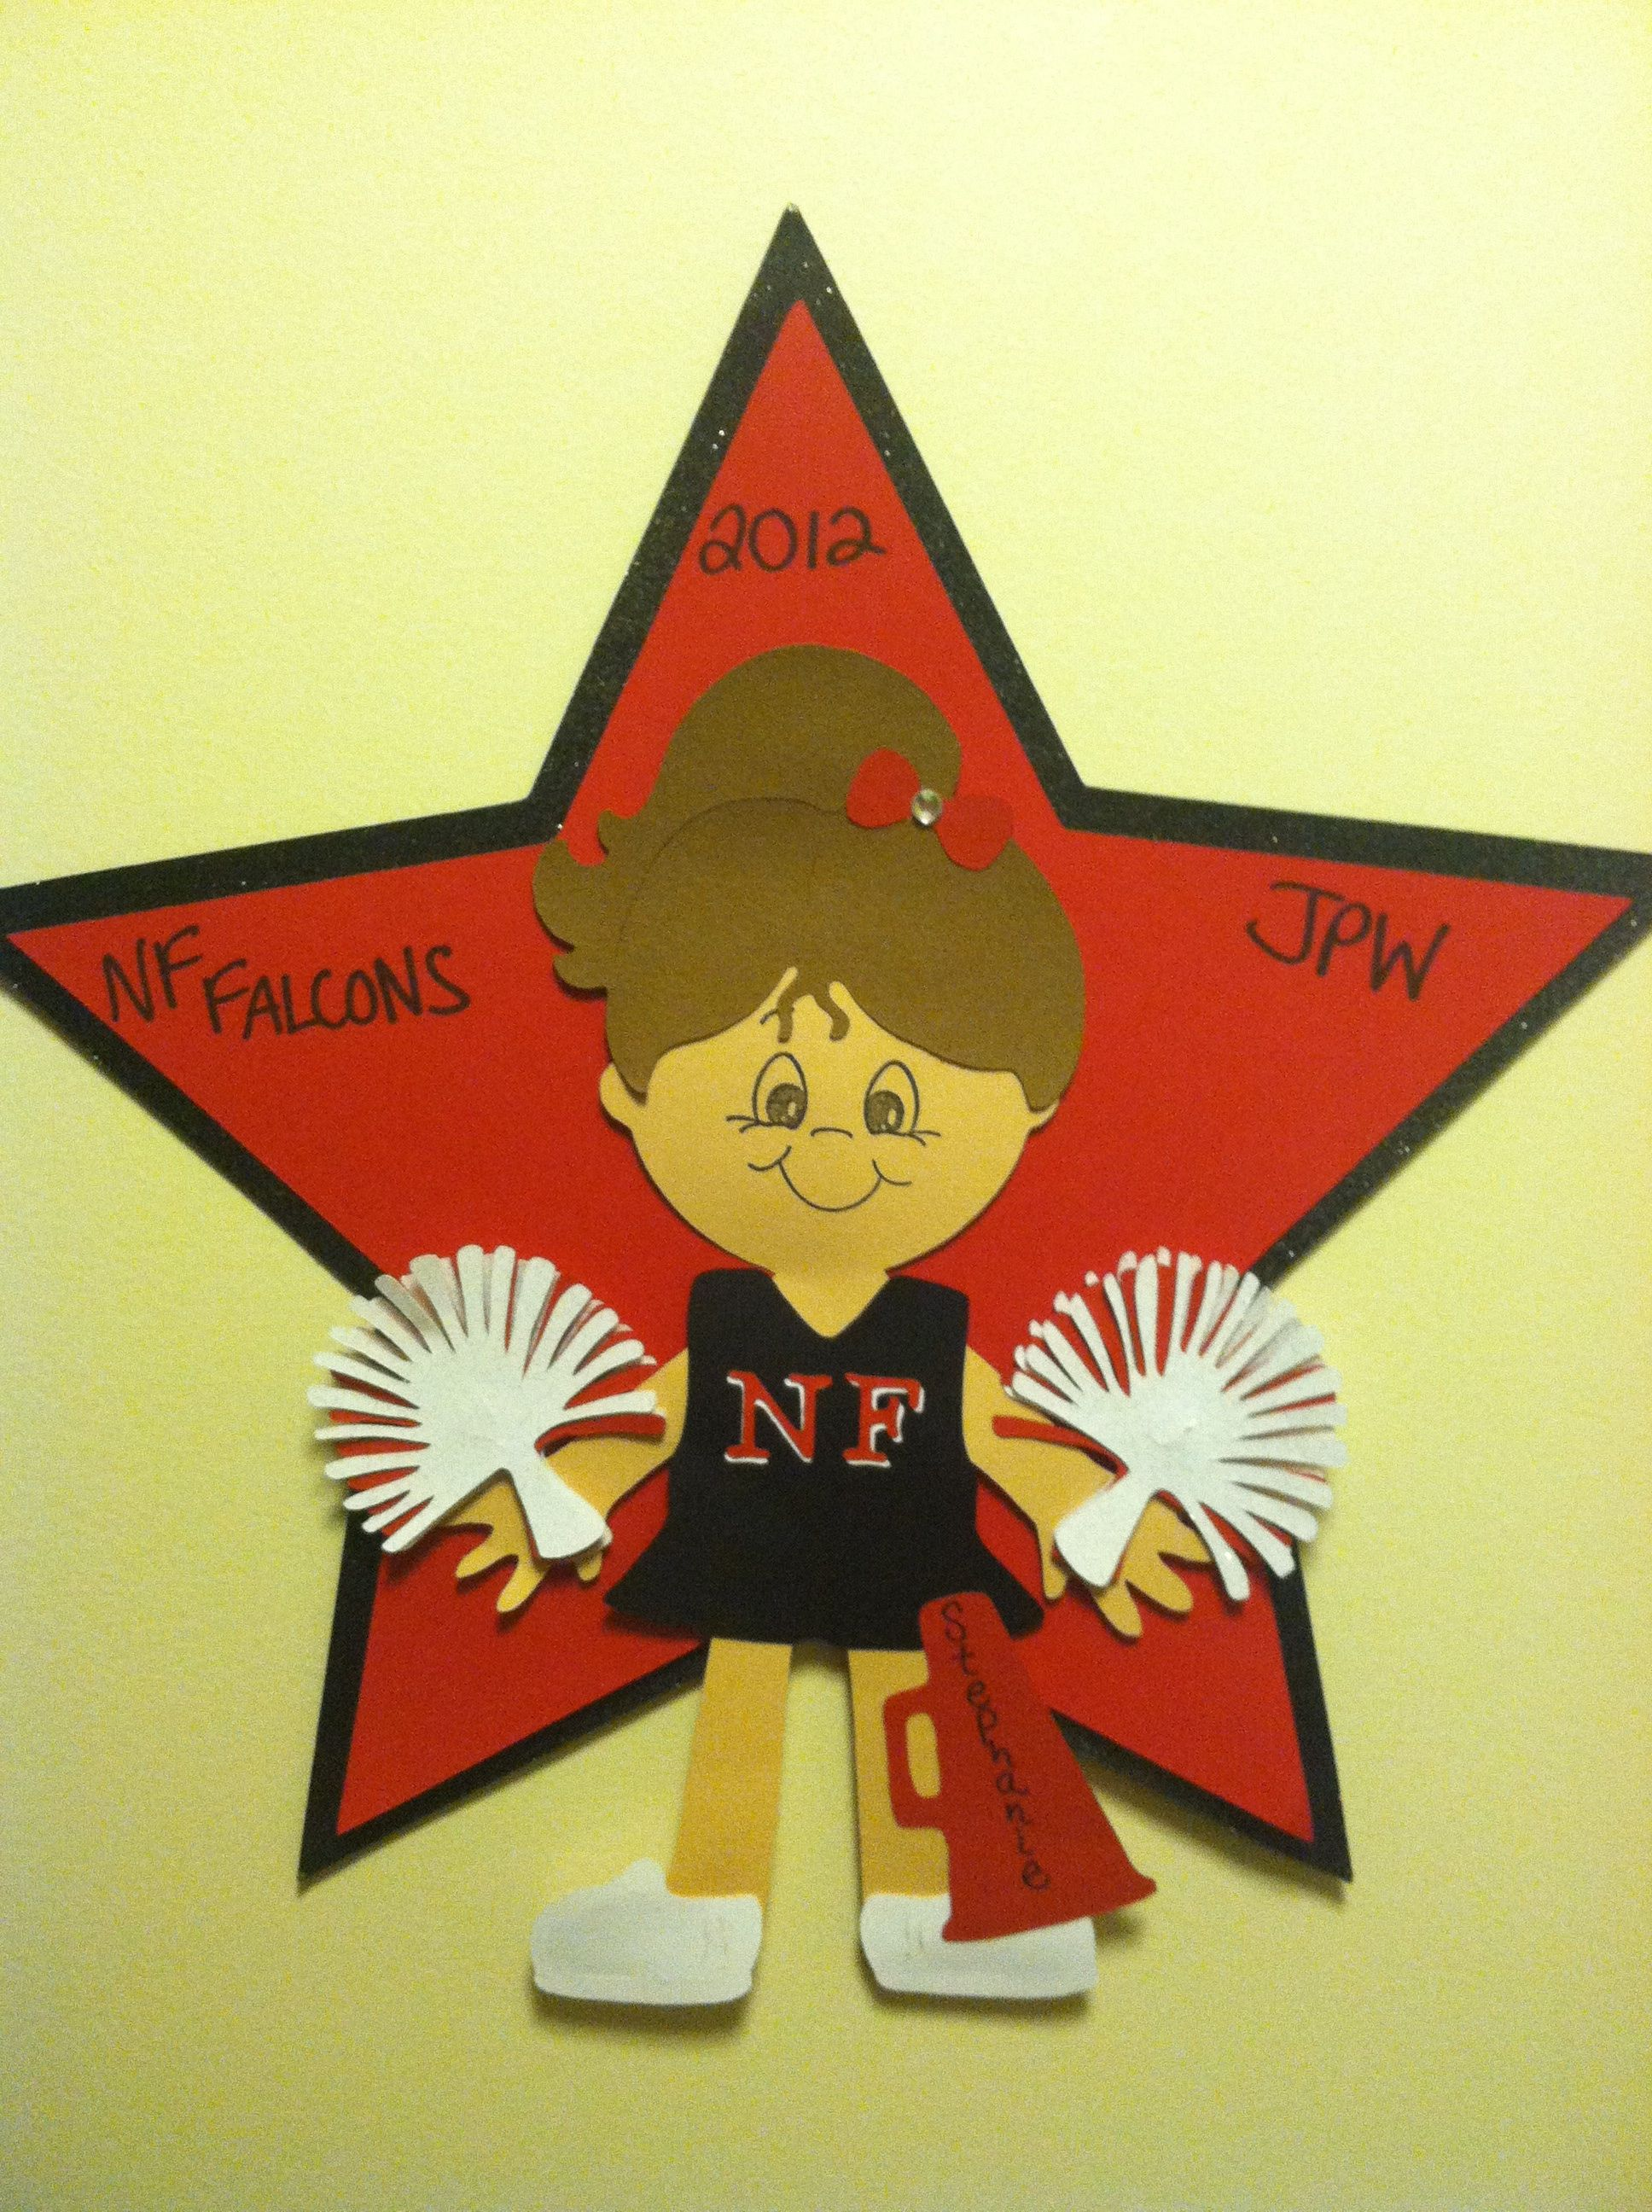 Cheer door decoration | CHEER | Pinterest | Cheer ...